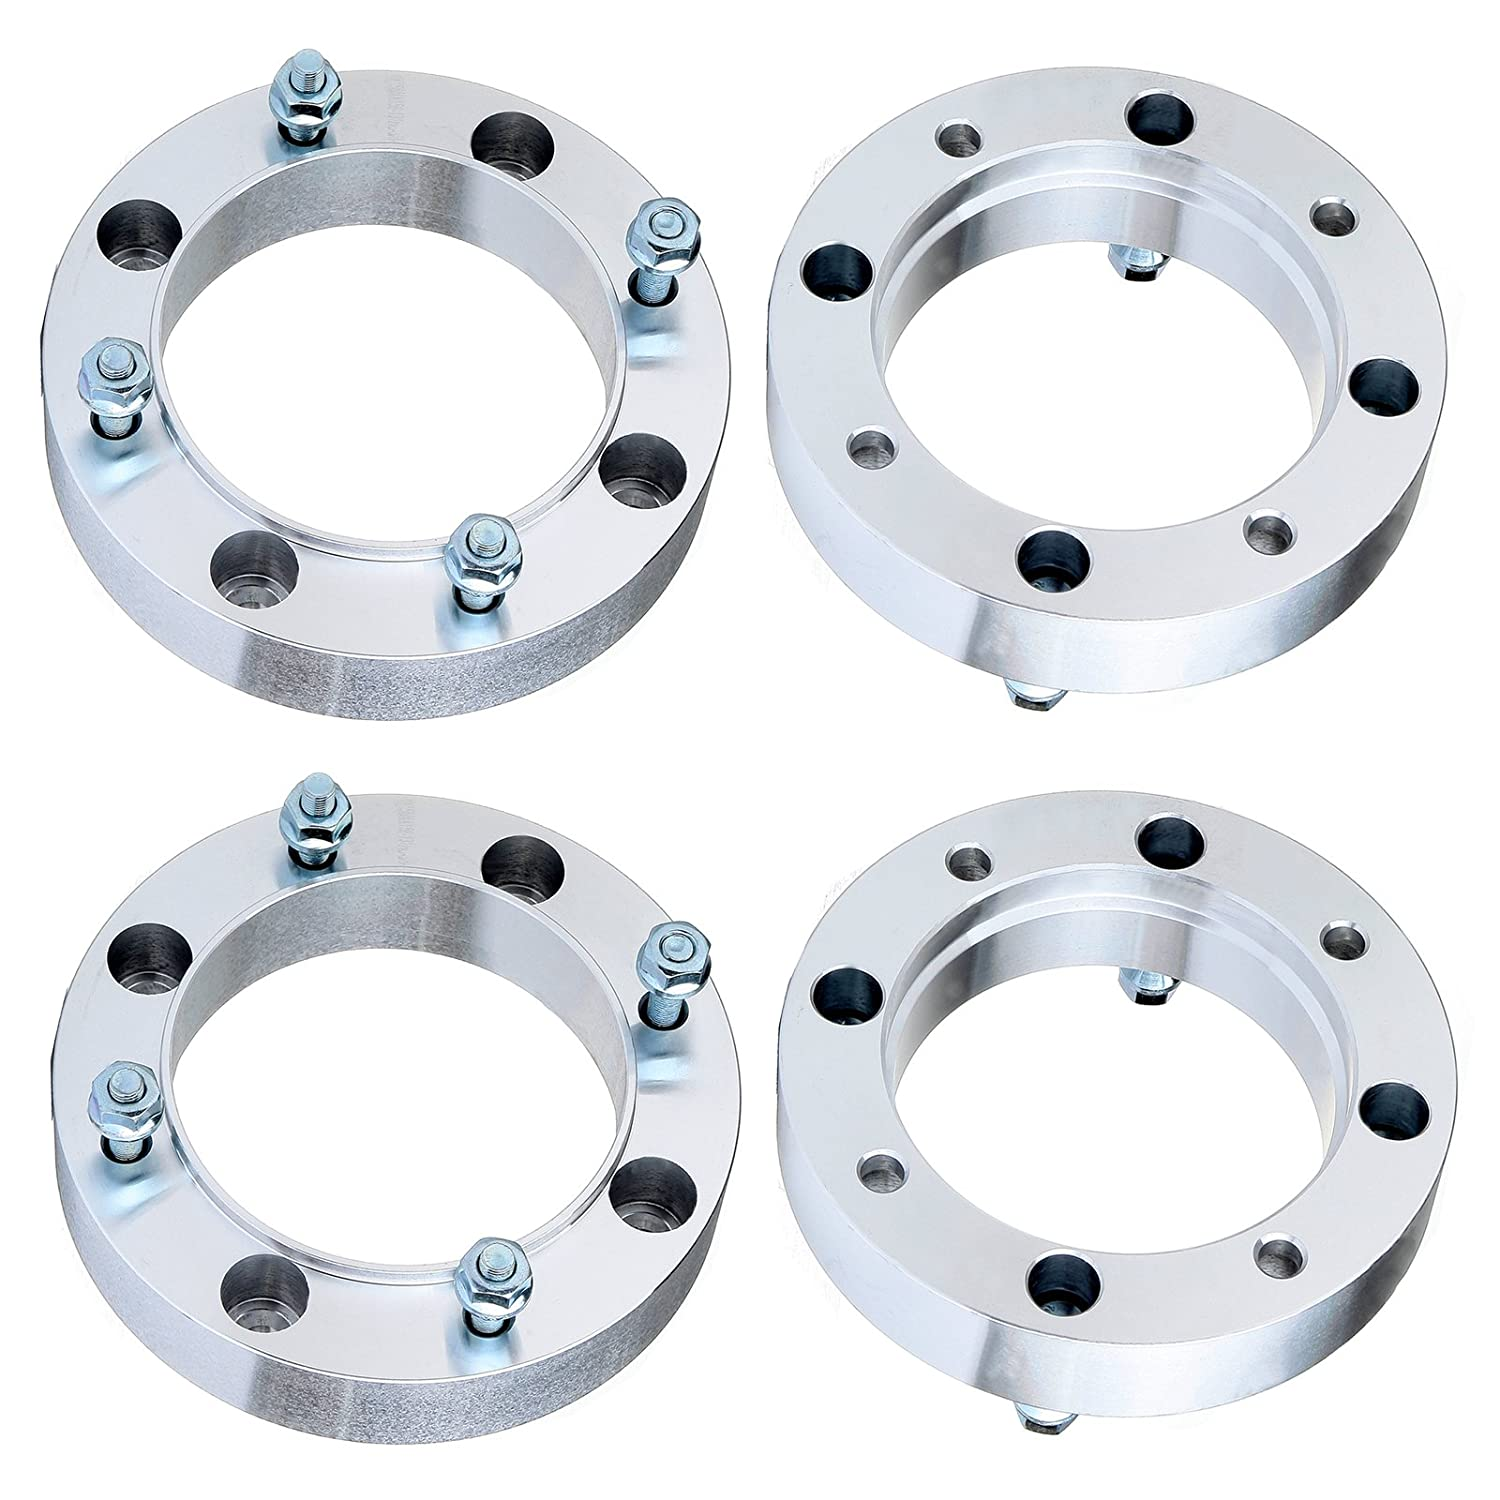 Wheel Spacers 4X156, ECCPP 1.5 inch Wheel Spacers 4 Lugs 4X 38mm 4x156mm for 1996-2012 Polaris Sportsman 500 with 3/8'x24 Studs ECCPP 1.5 inch Wheel Spacers 4 Lugs 4X 38mm 4x156mm for 1996-2012 Polaris Sportsman 500 with 3/8x24 Studs BHBU0503A3356